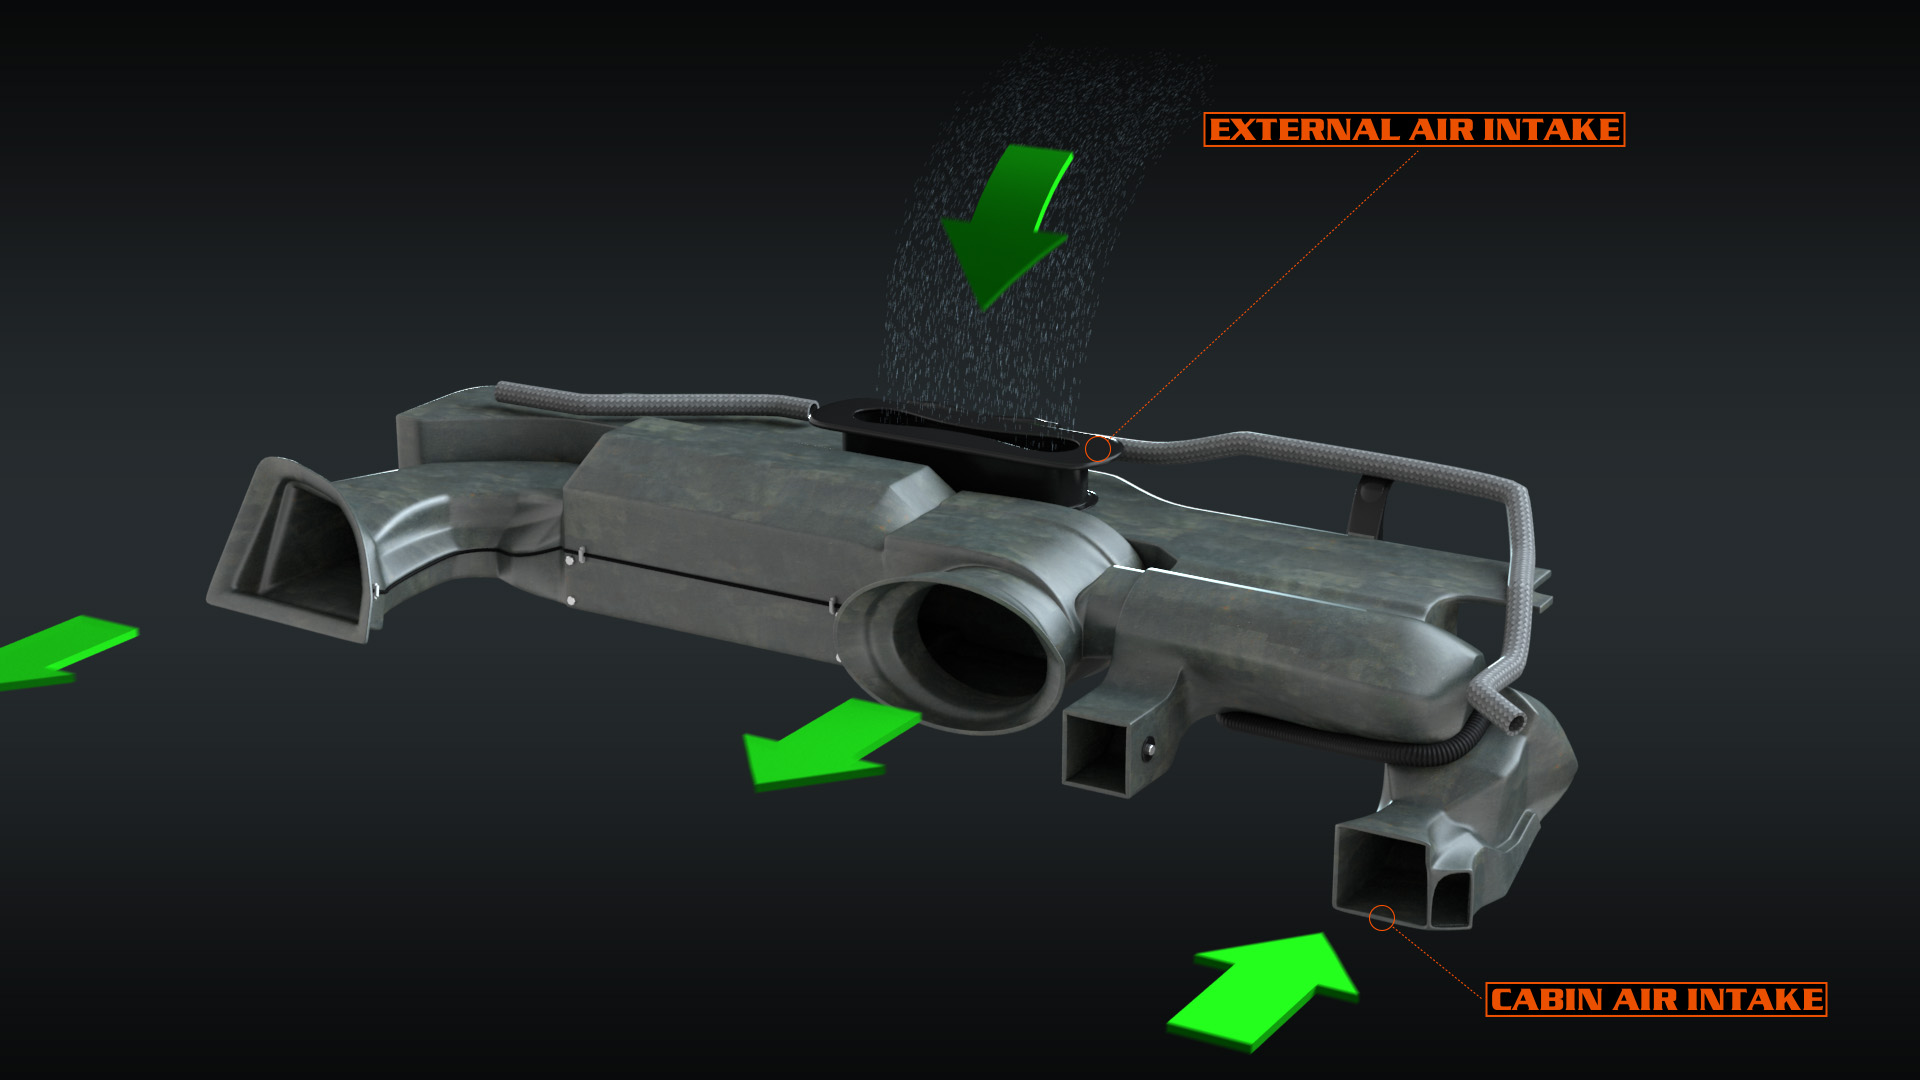 armorall_ventductcleaner_image01